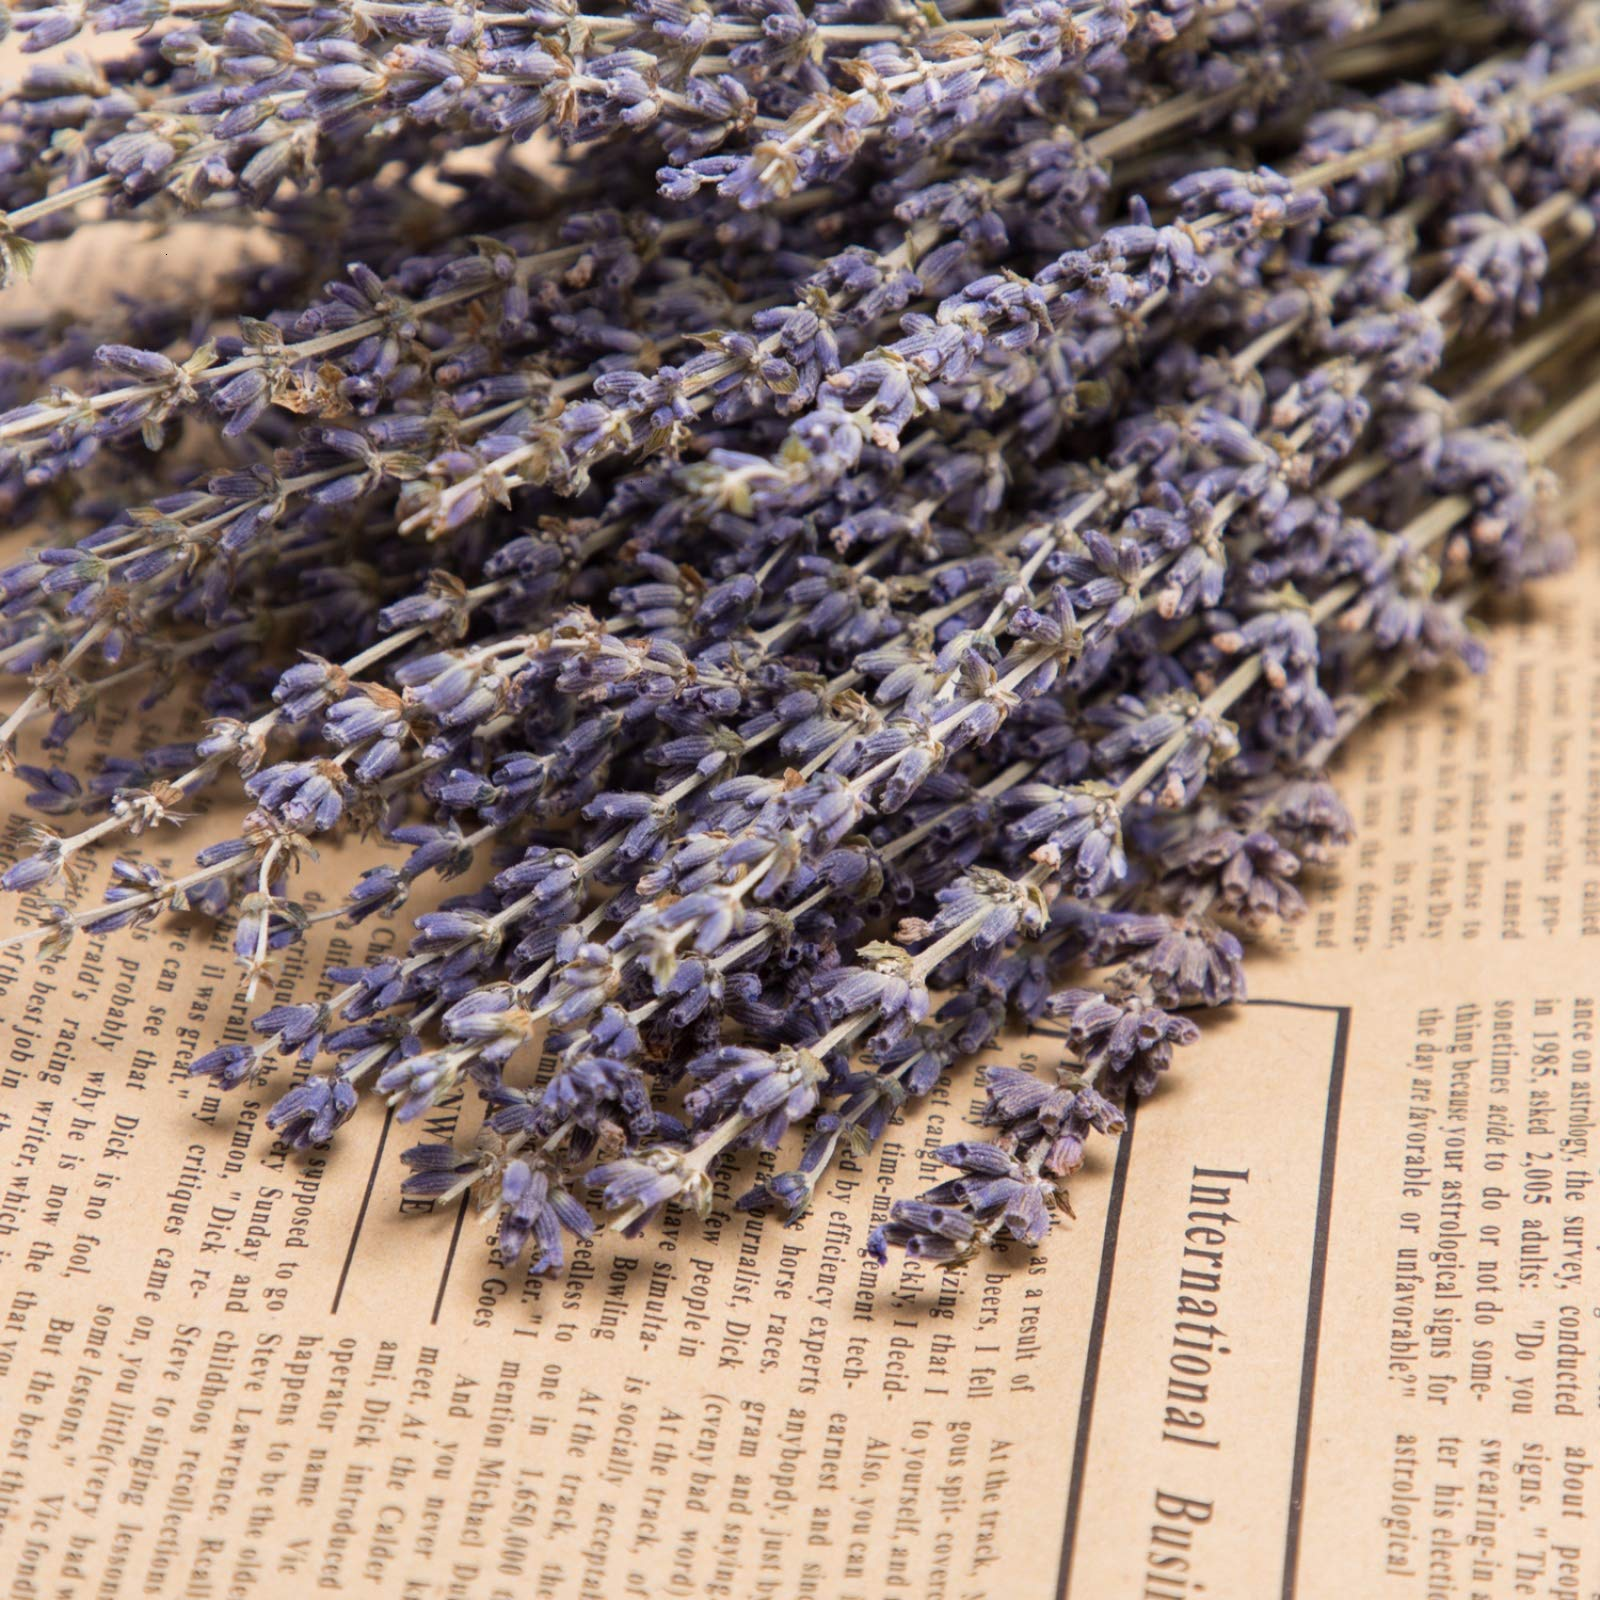 Timoo Dried Lavender Bundles 100% Natural DriedLavenderFlowers for Home Decoration, Photo Props, Home Fragrance, 2 Bundles Pack by Timoo (Image #6)